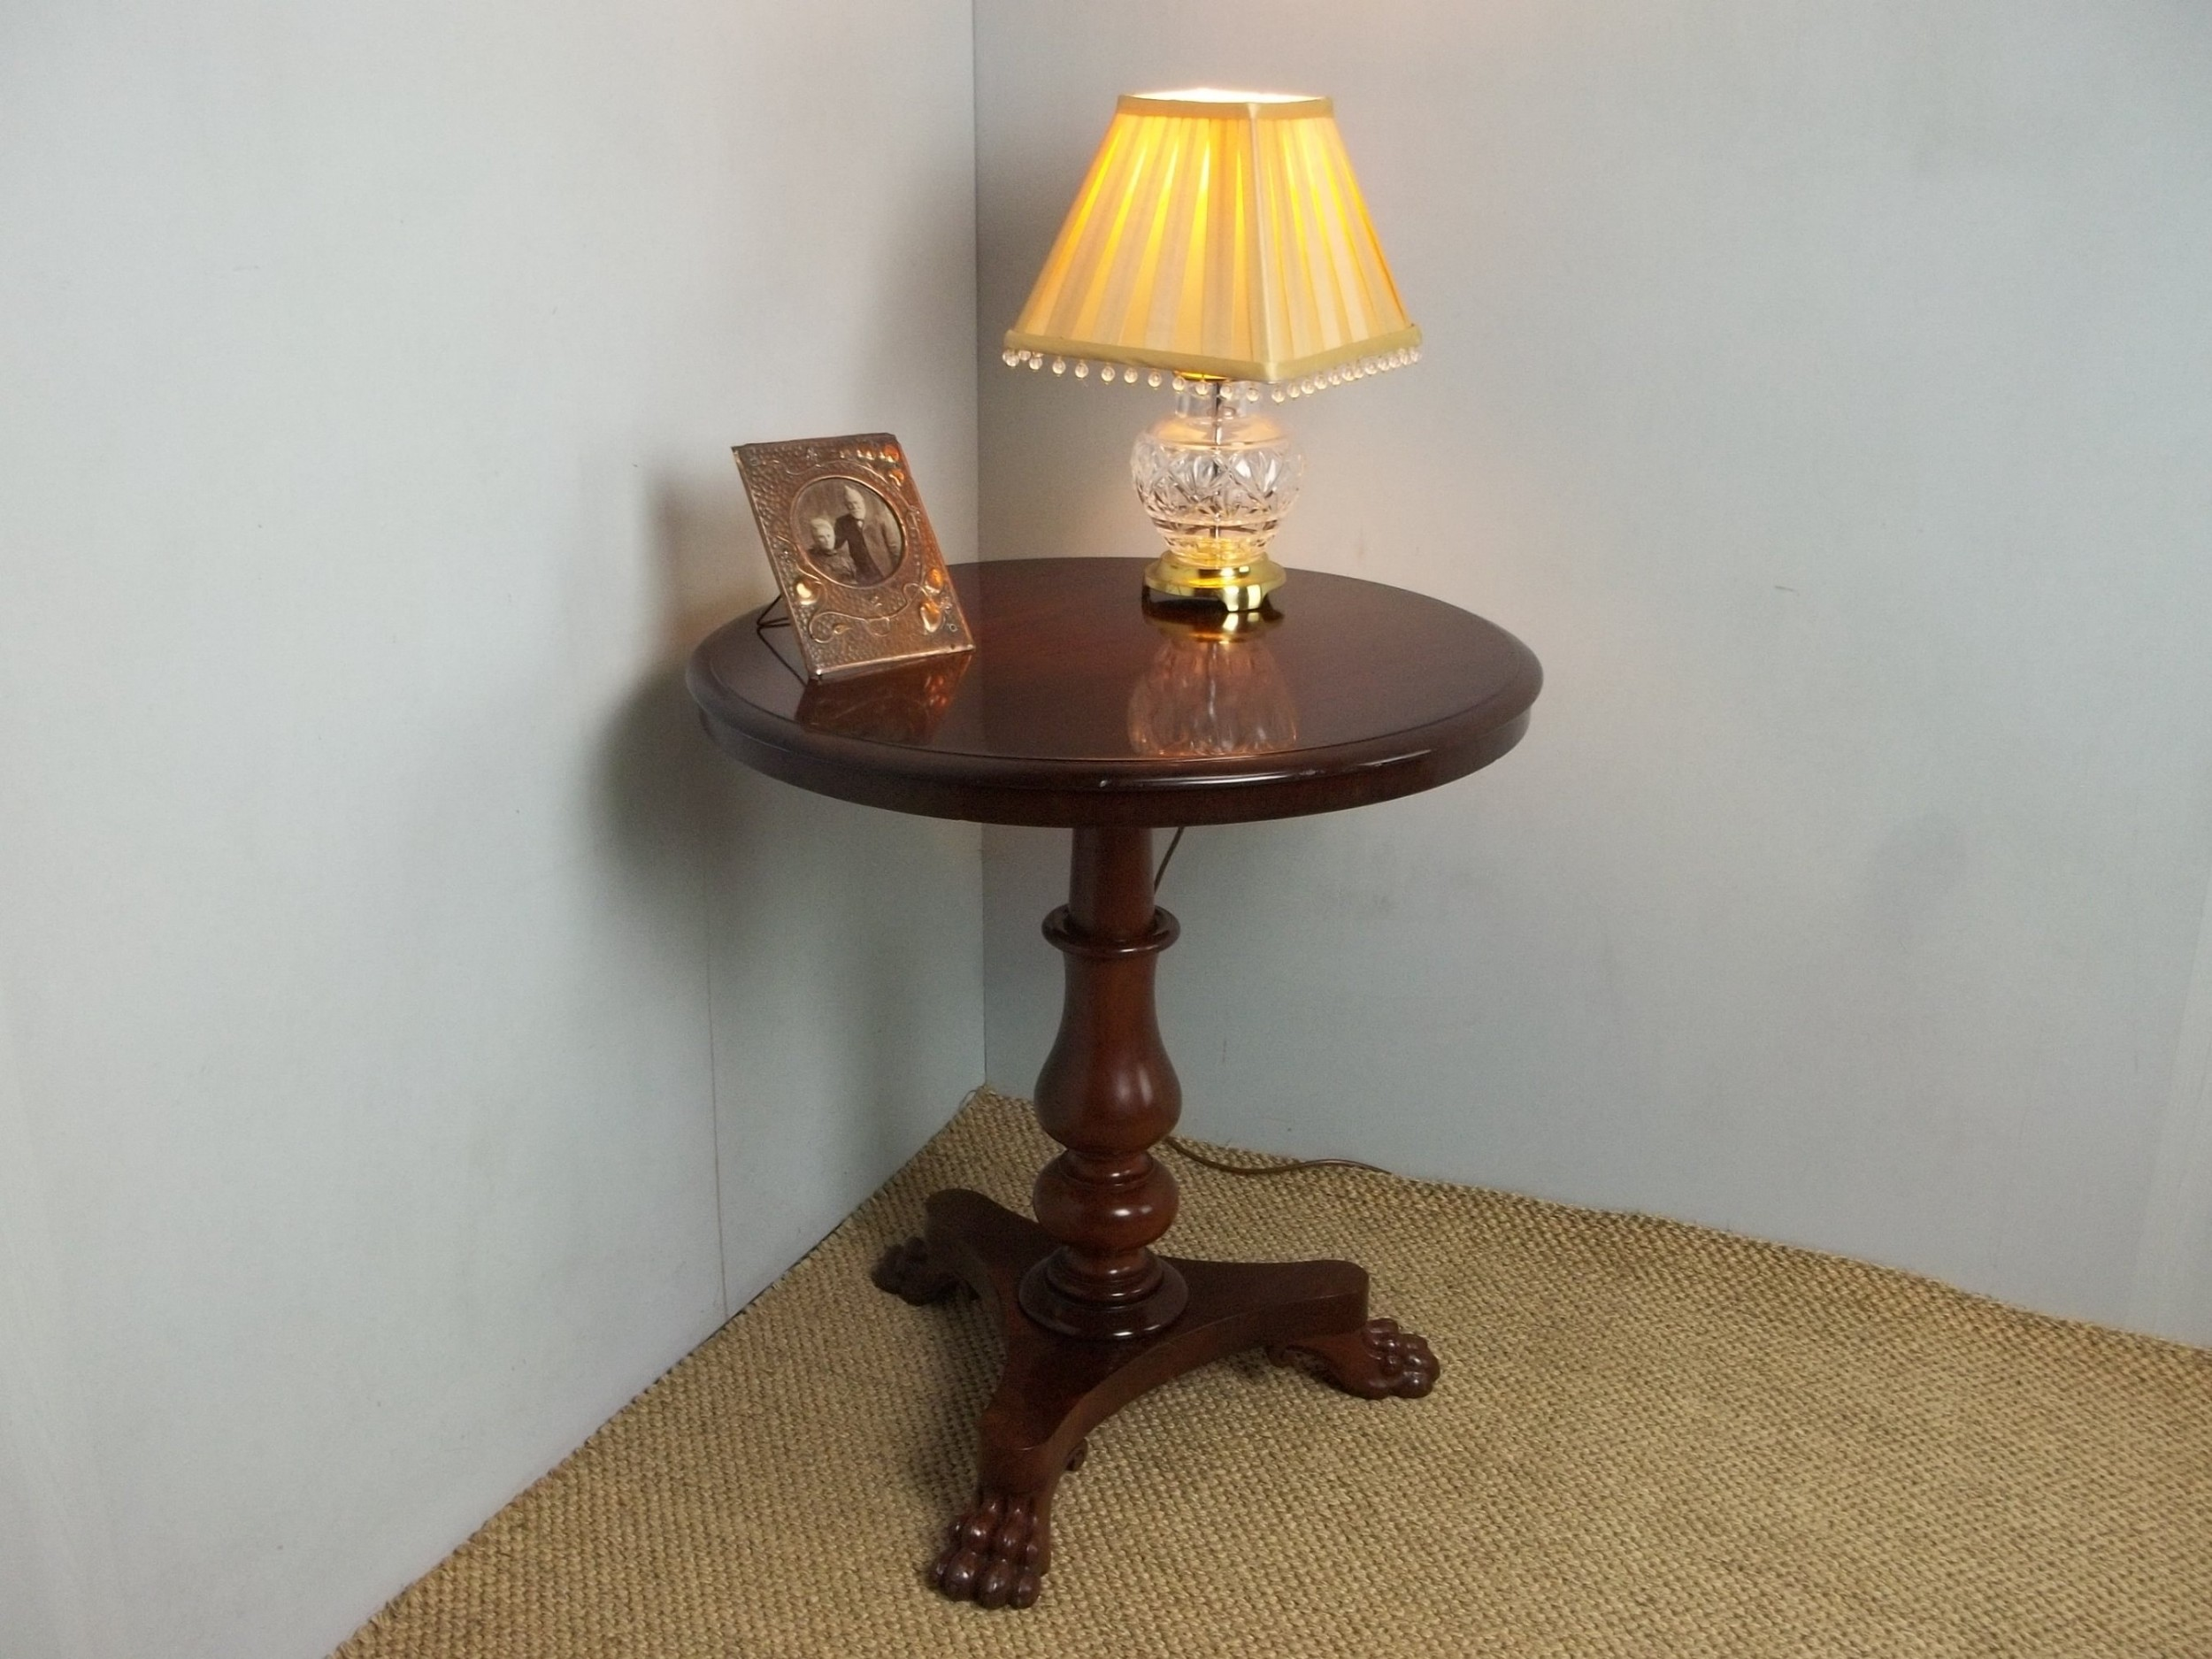 Antique Regency William Iv Small Mahogany Centre Tripod Pedestal Dining Circular Round Hall Lamp Occasional Side Table C 1830 492539 Sellingantiques Co Uk